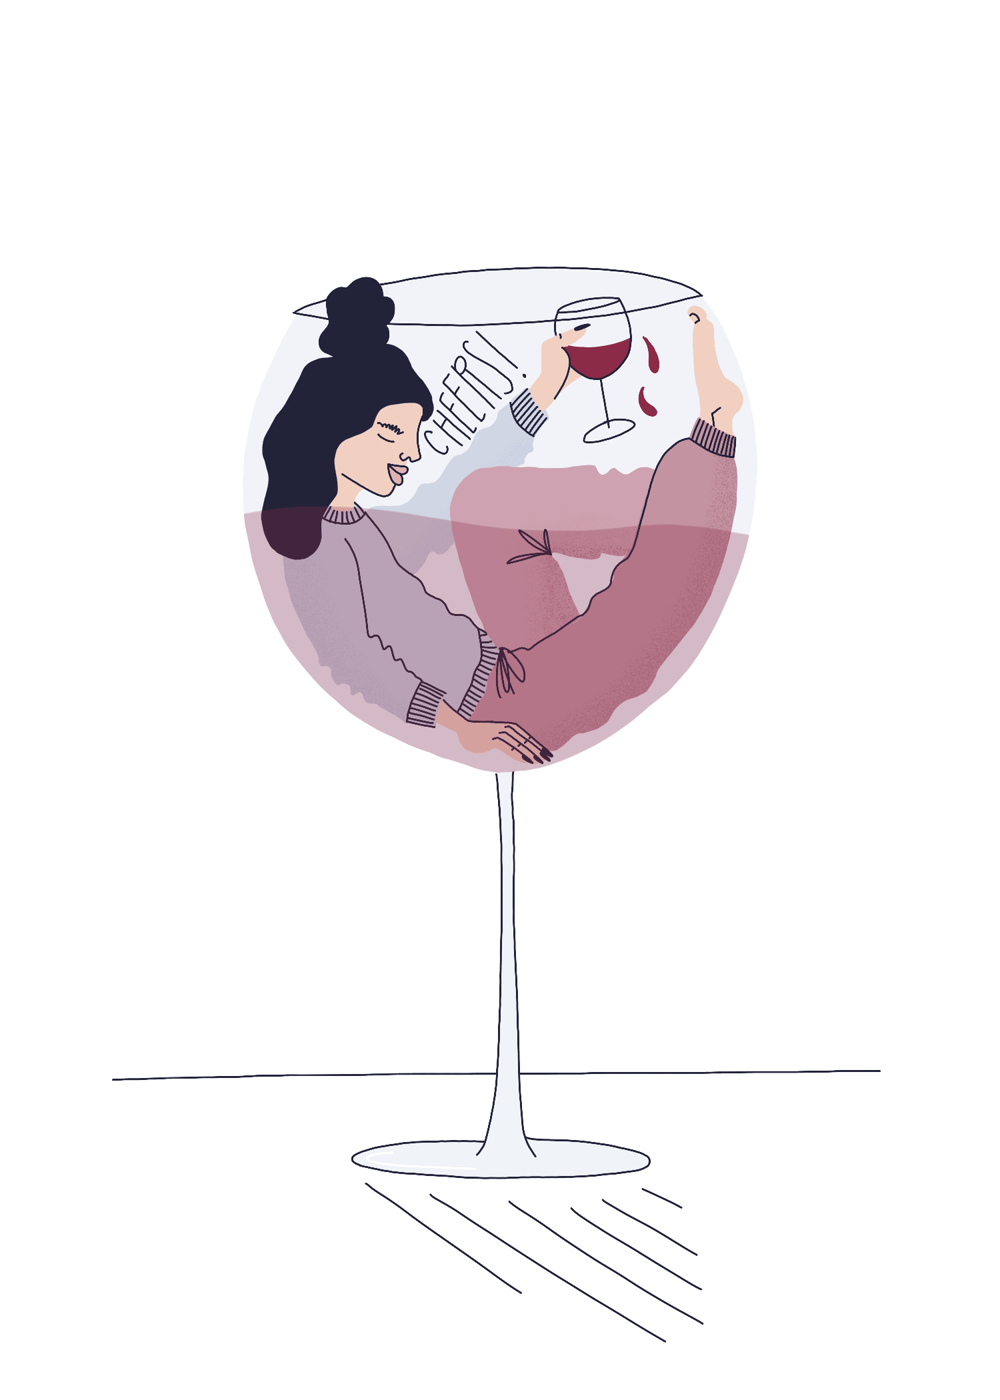 wine bodies! - image 3 - student project